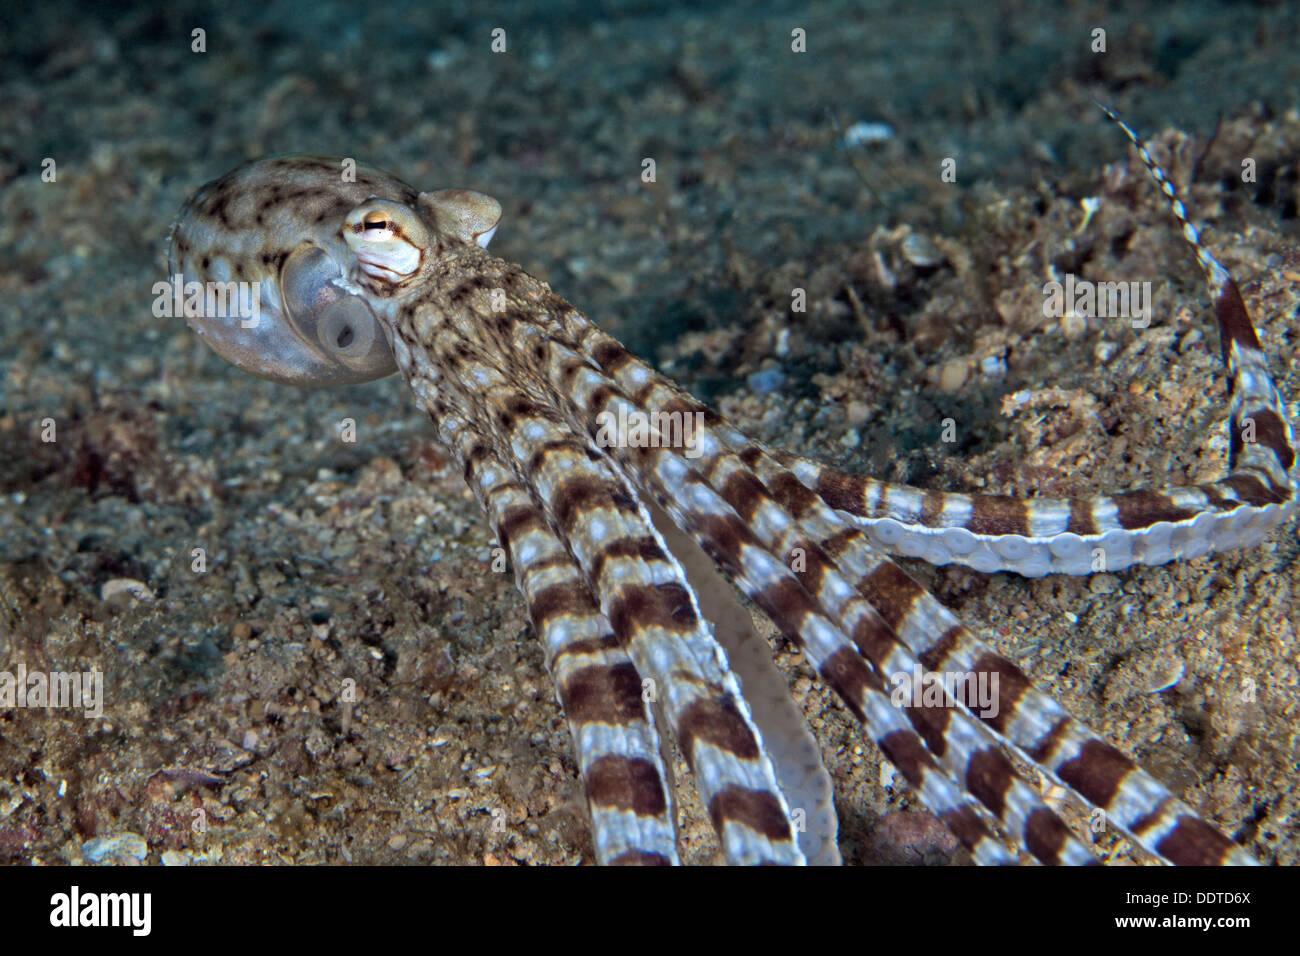 Mimic octopus, Thaumoctopu mimicus escapes by jet propulsion. Puerto Galera, Philippines. - Stock Image